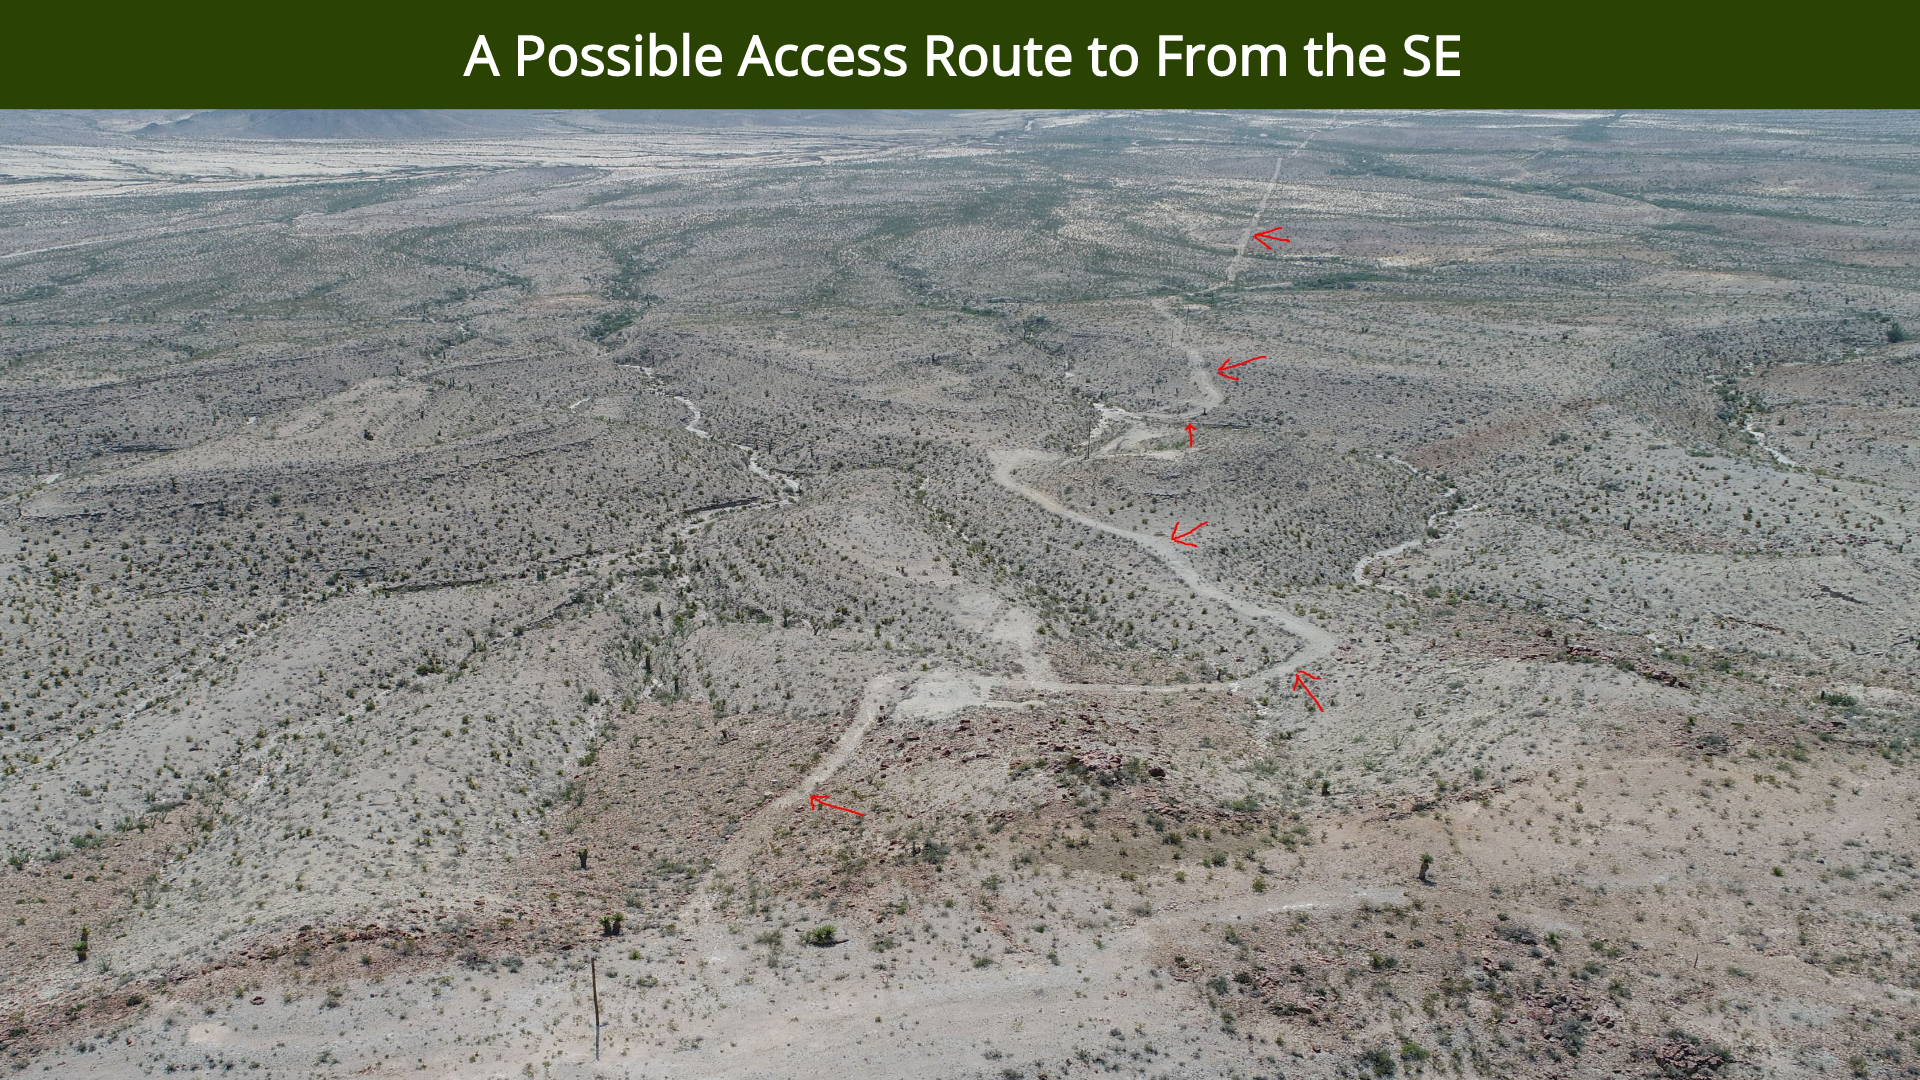 A Possible Access Route to From the SE